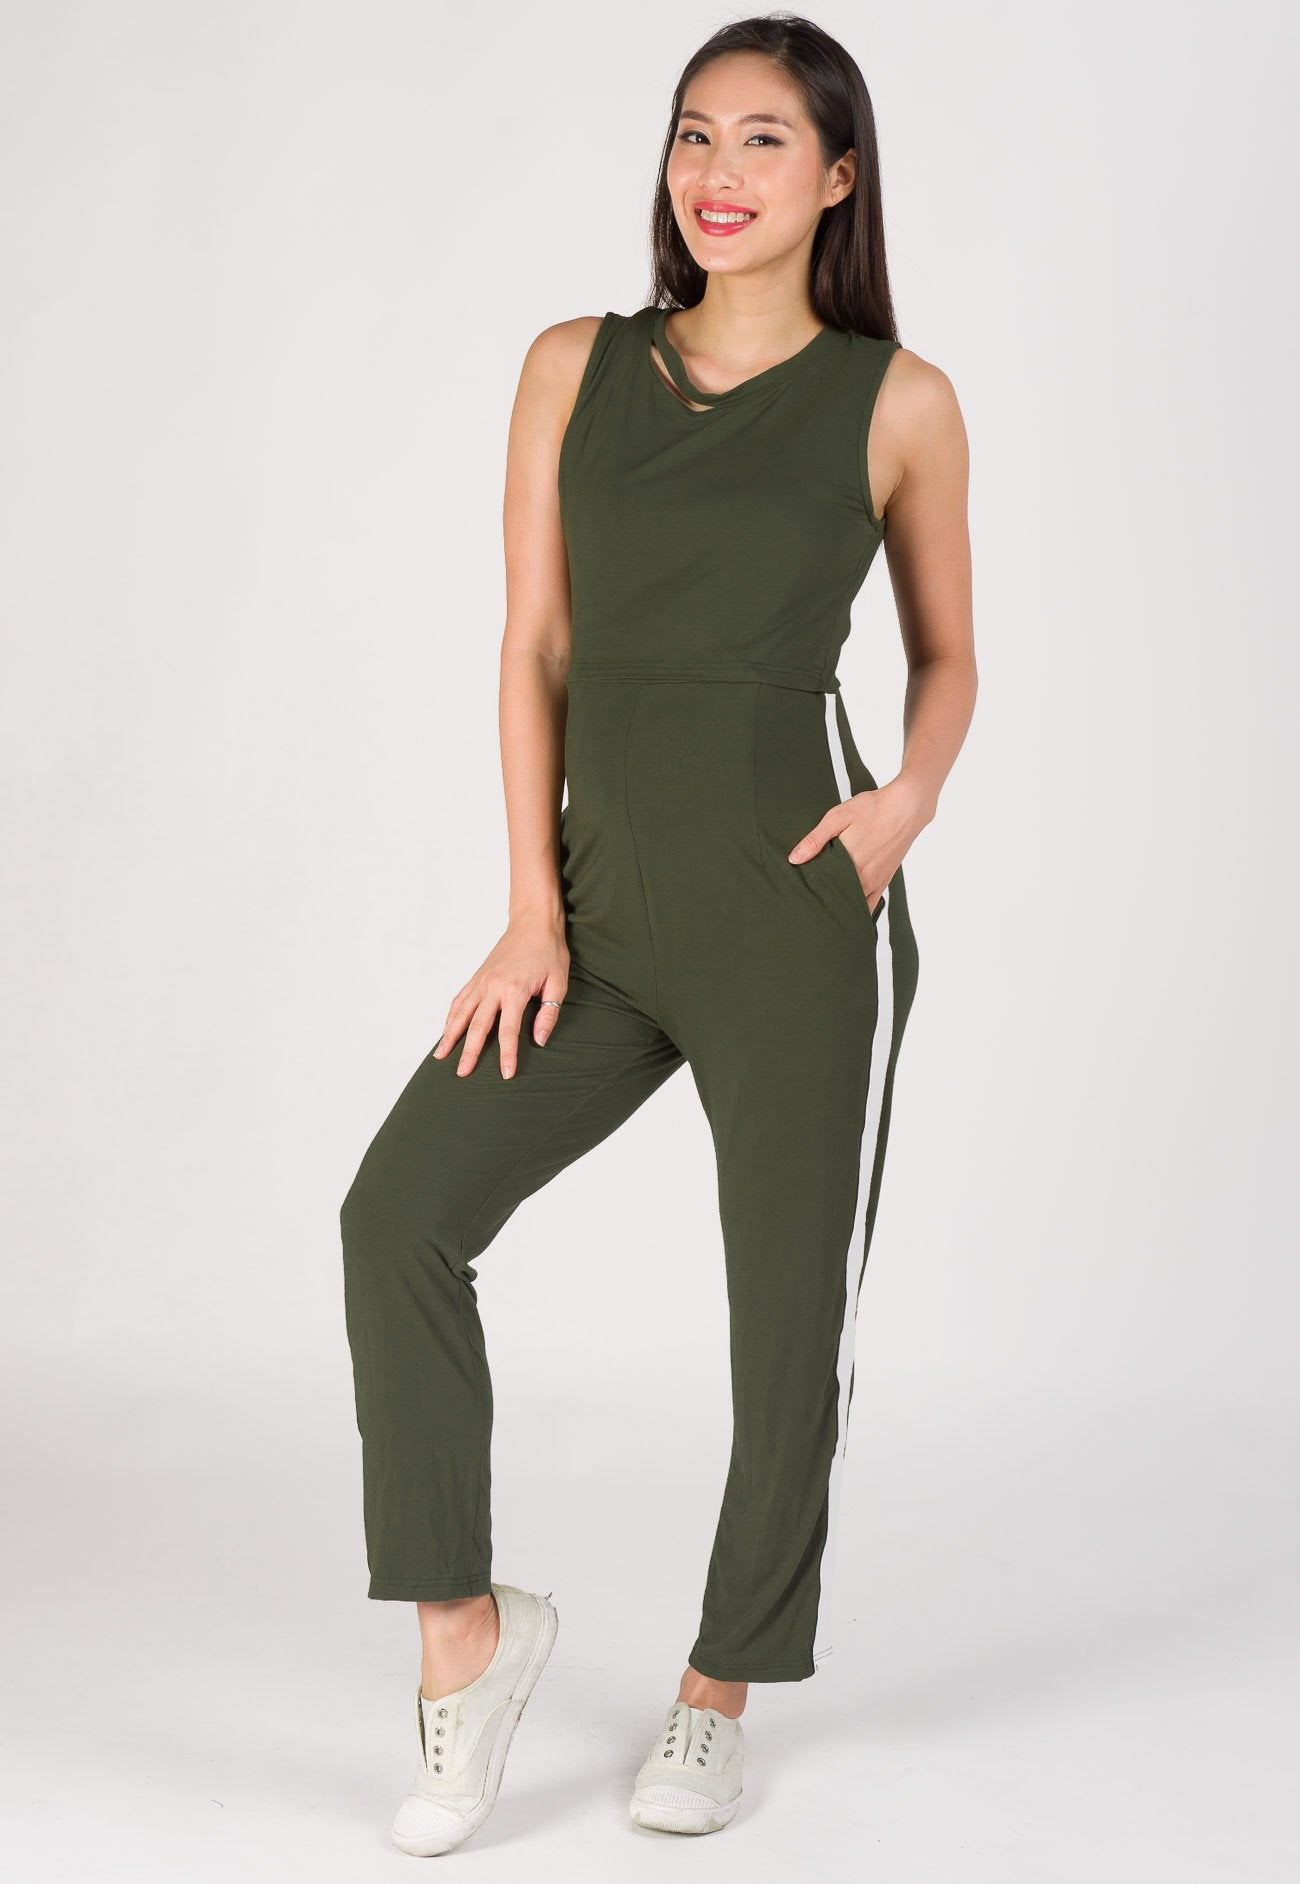 Sporty Side Band Nursing Jumpsuit in Green  by Jump Eat Cry - Maternity and nursing wear